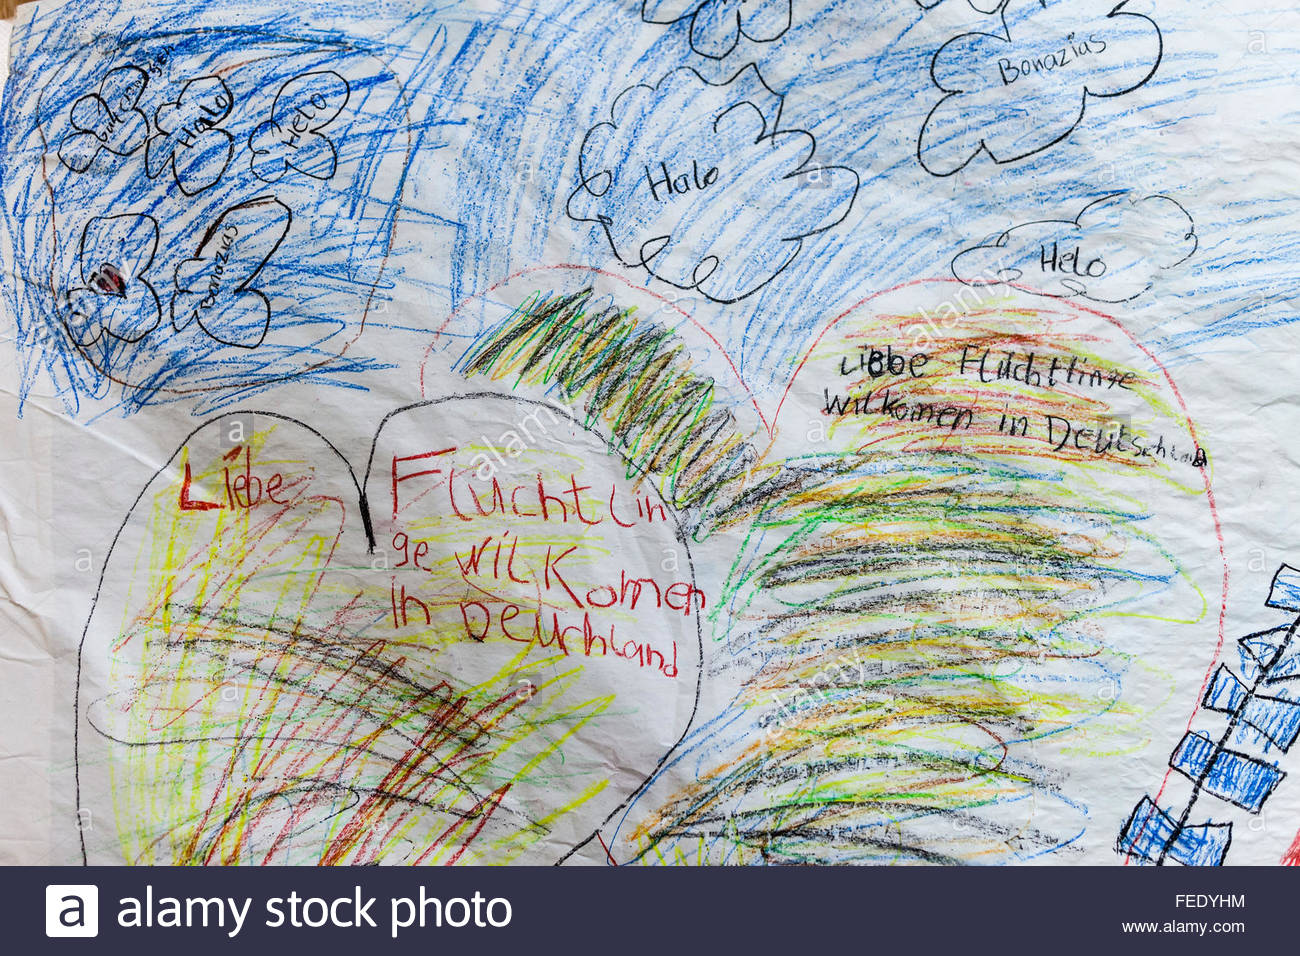 childs drawing welcoming refugees arriving from german border town of Passau in a tent at Cologne airport train - Stock Image